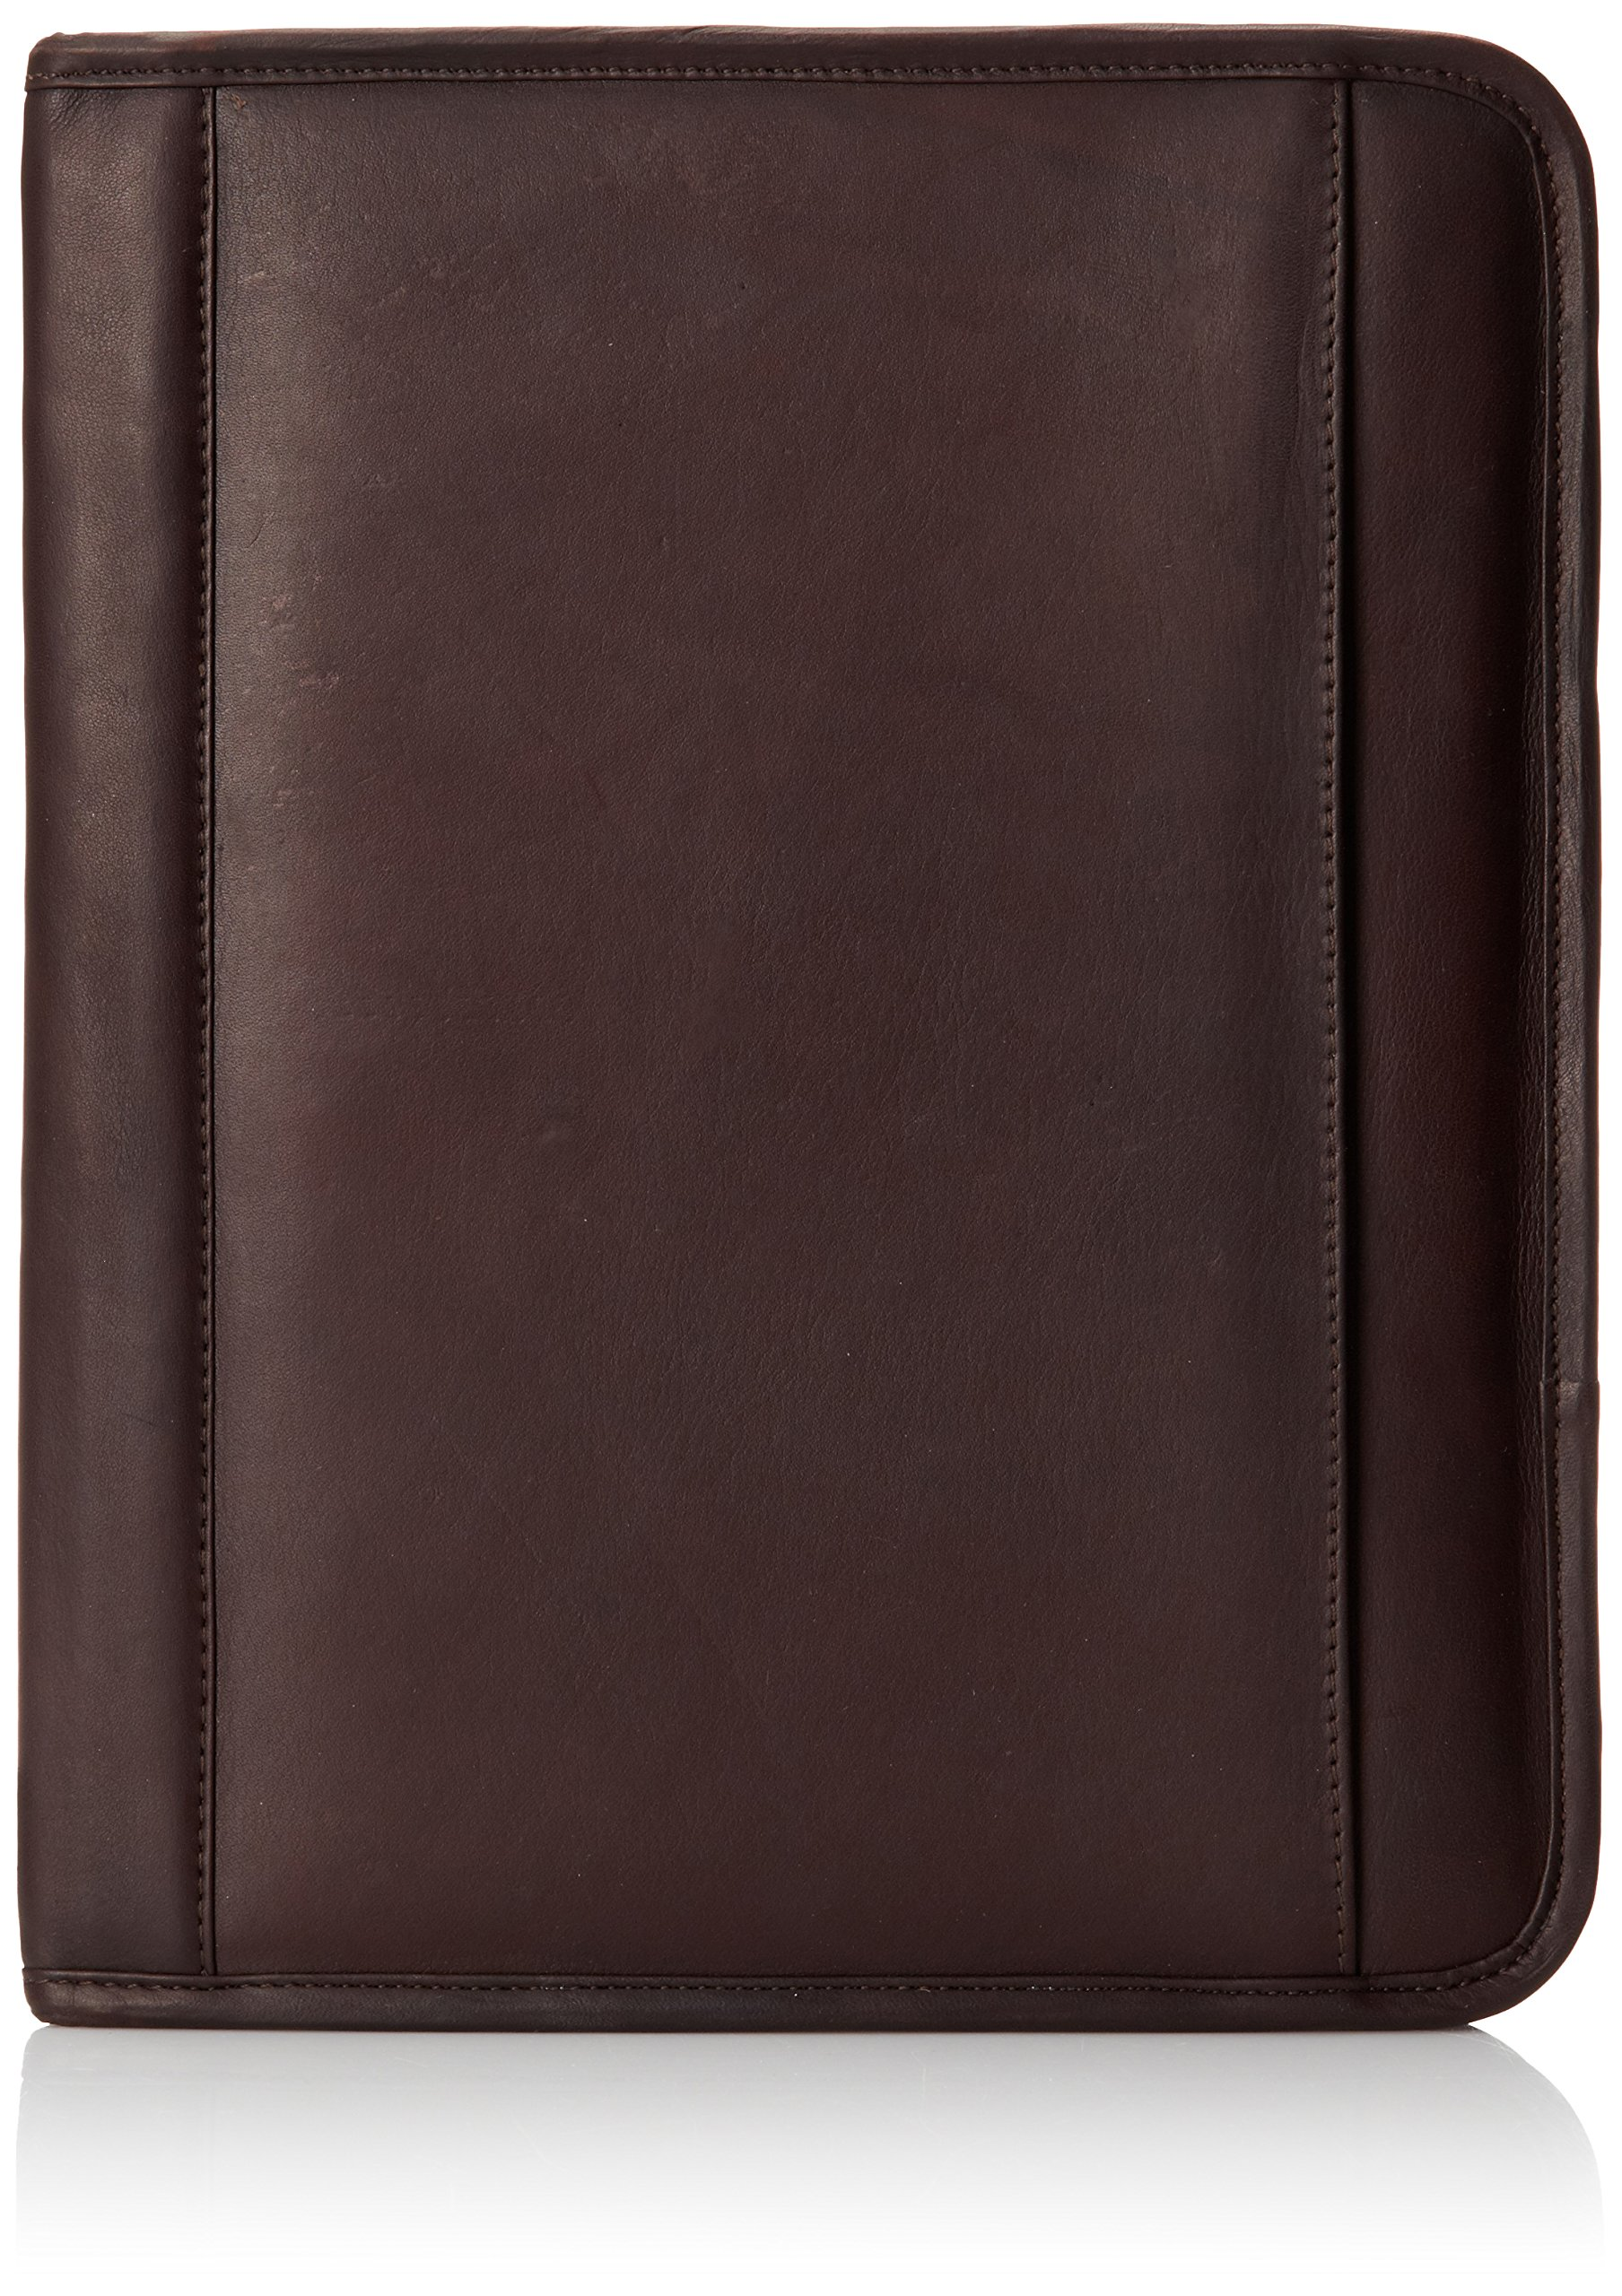 Claire Chase Classic Folio, Cafe, One Size